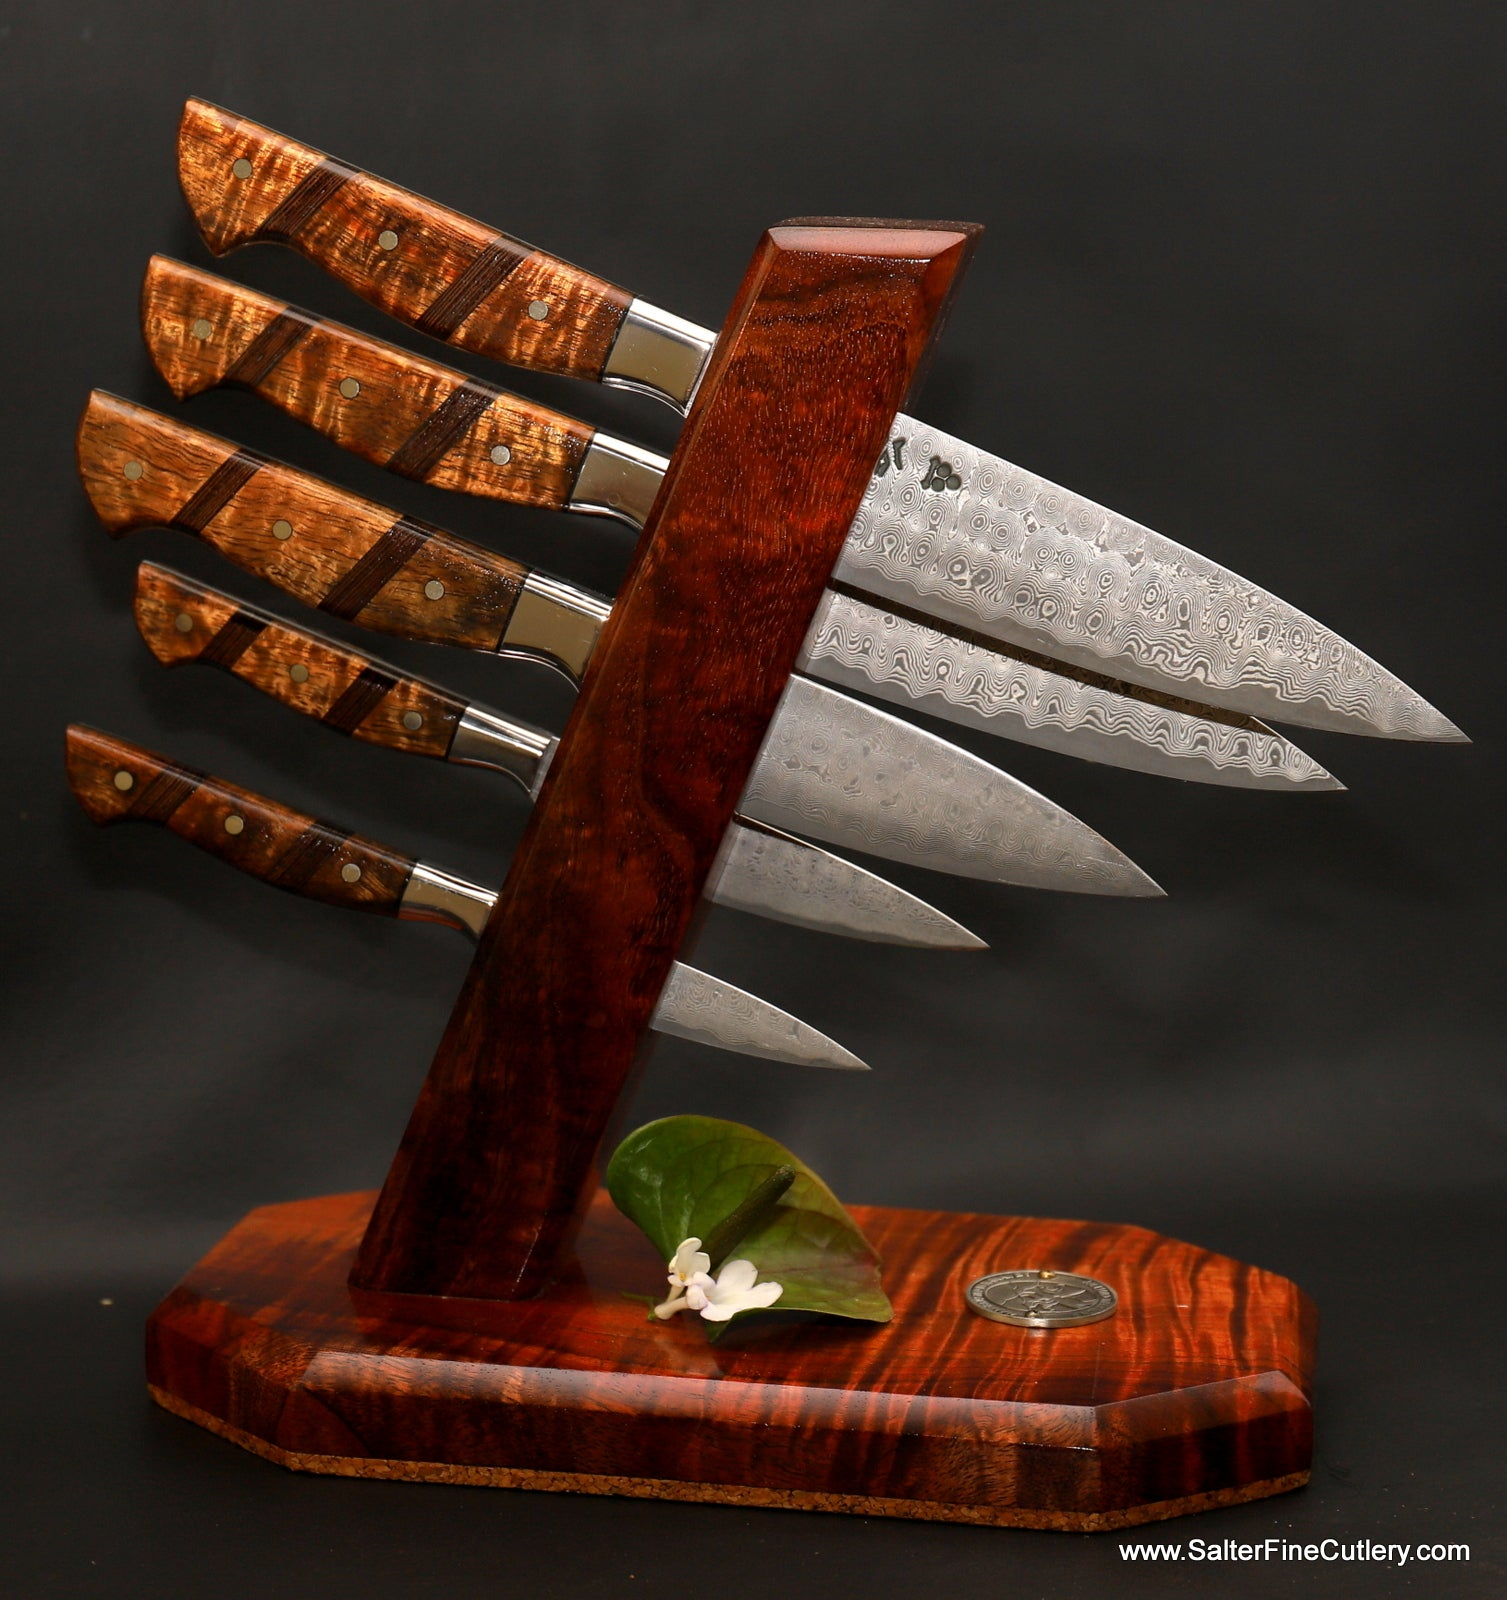 Designer luxury custom kitchen knife set in tower stand by Salter Fine Cutlery of Hawaii